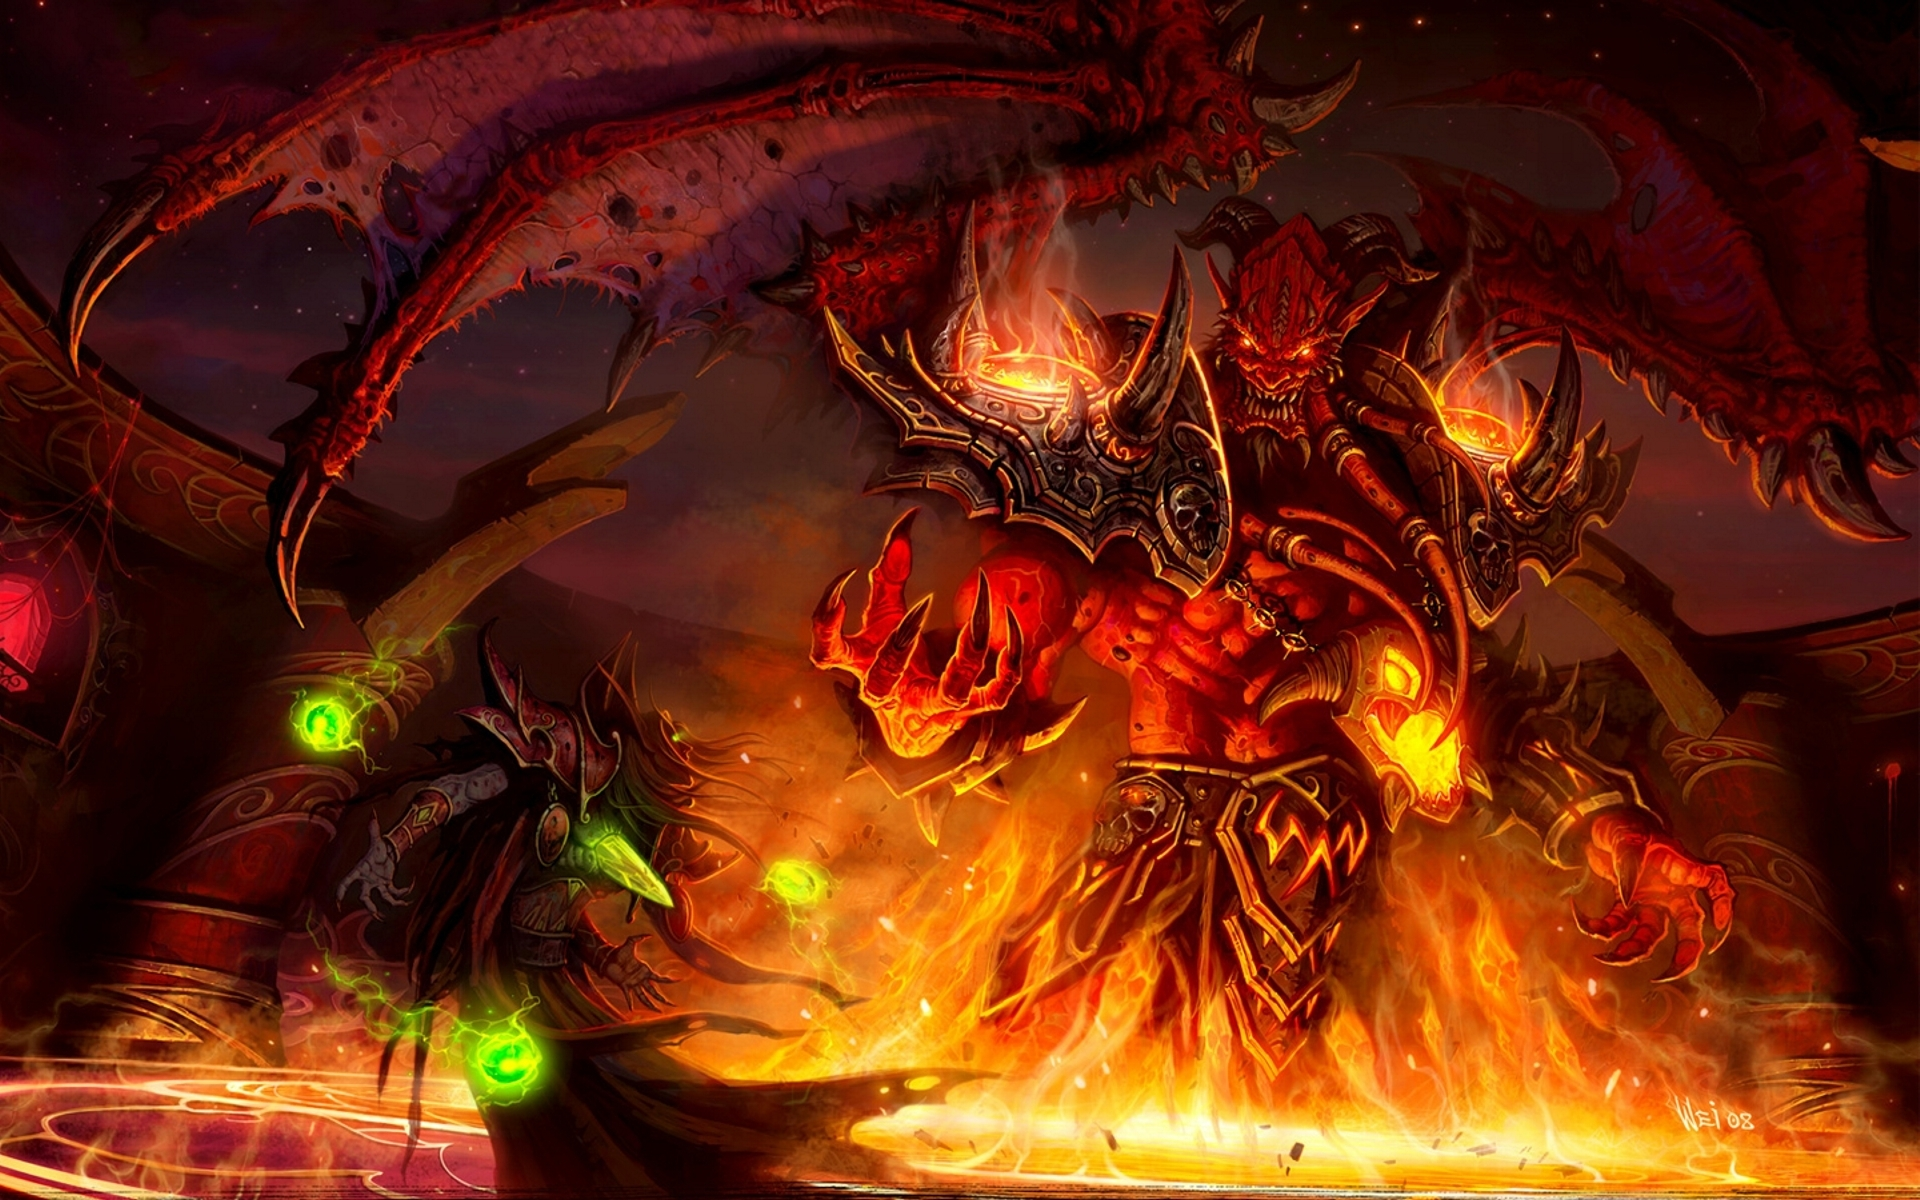 World of warcraft night elfs stomach gets  exploited scenes